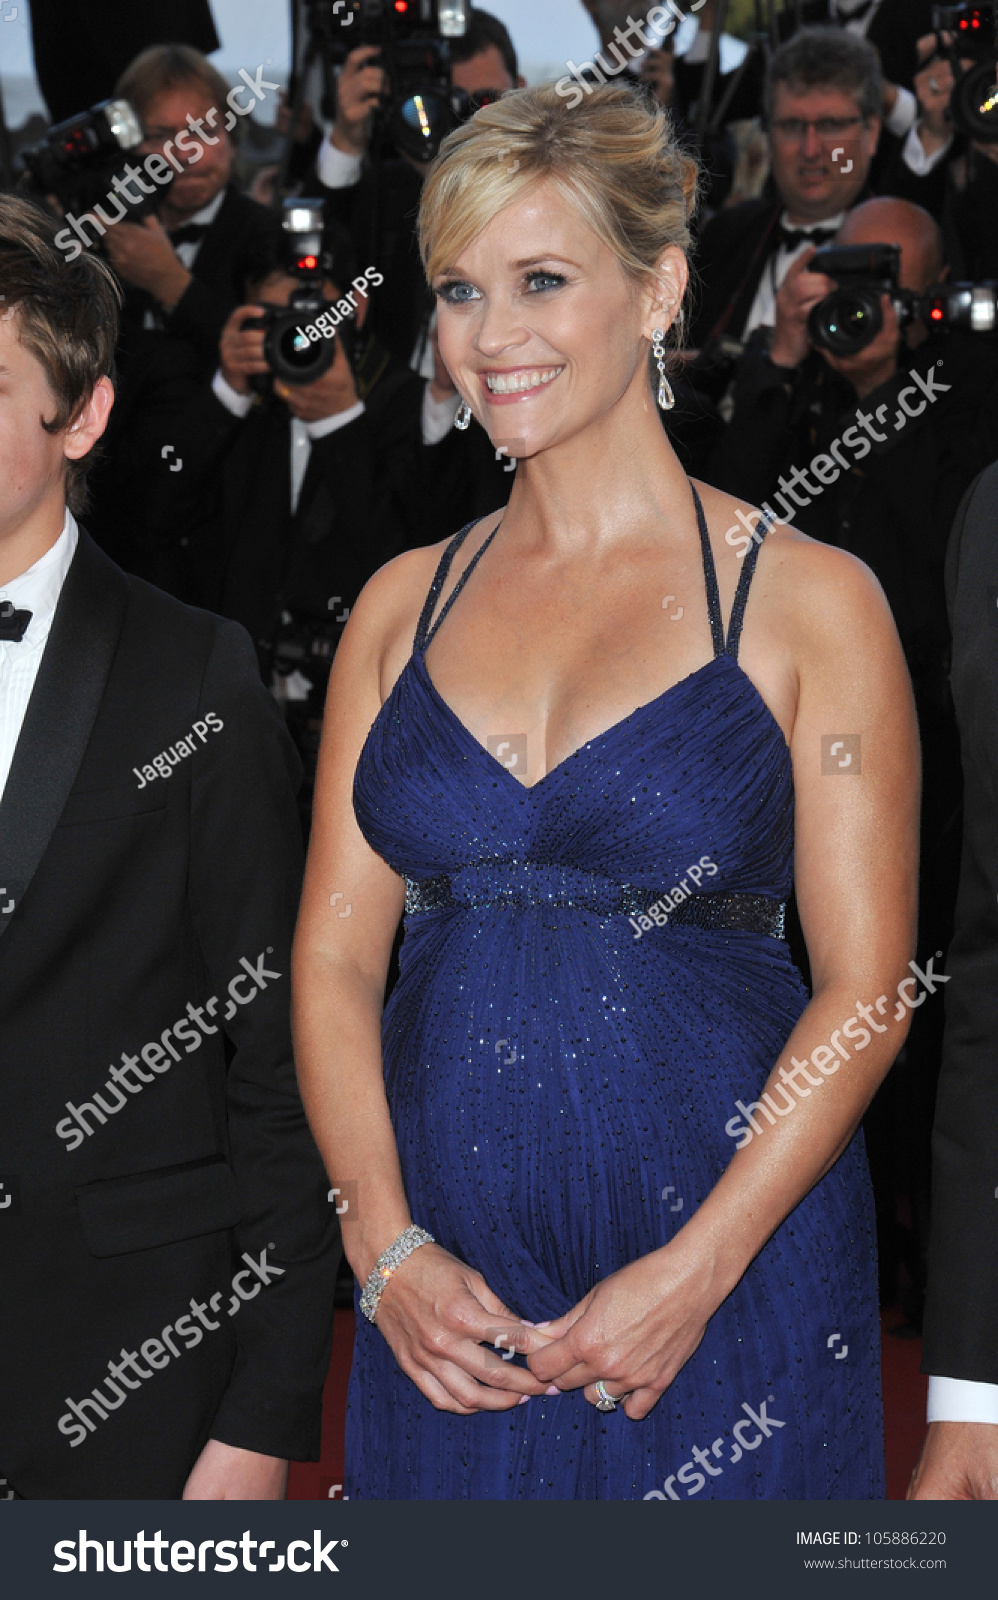 6dd9a2aaa CANNES FRANCE MAY 26 2012 Reese Stock Photo (Edit Now) 105886220 ...